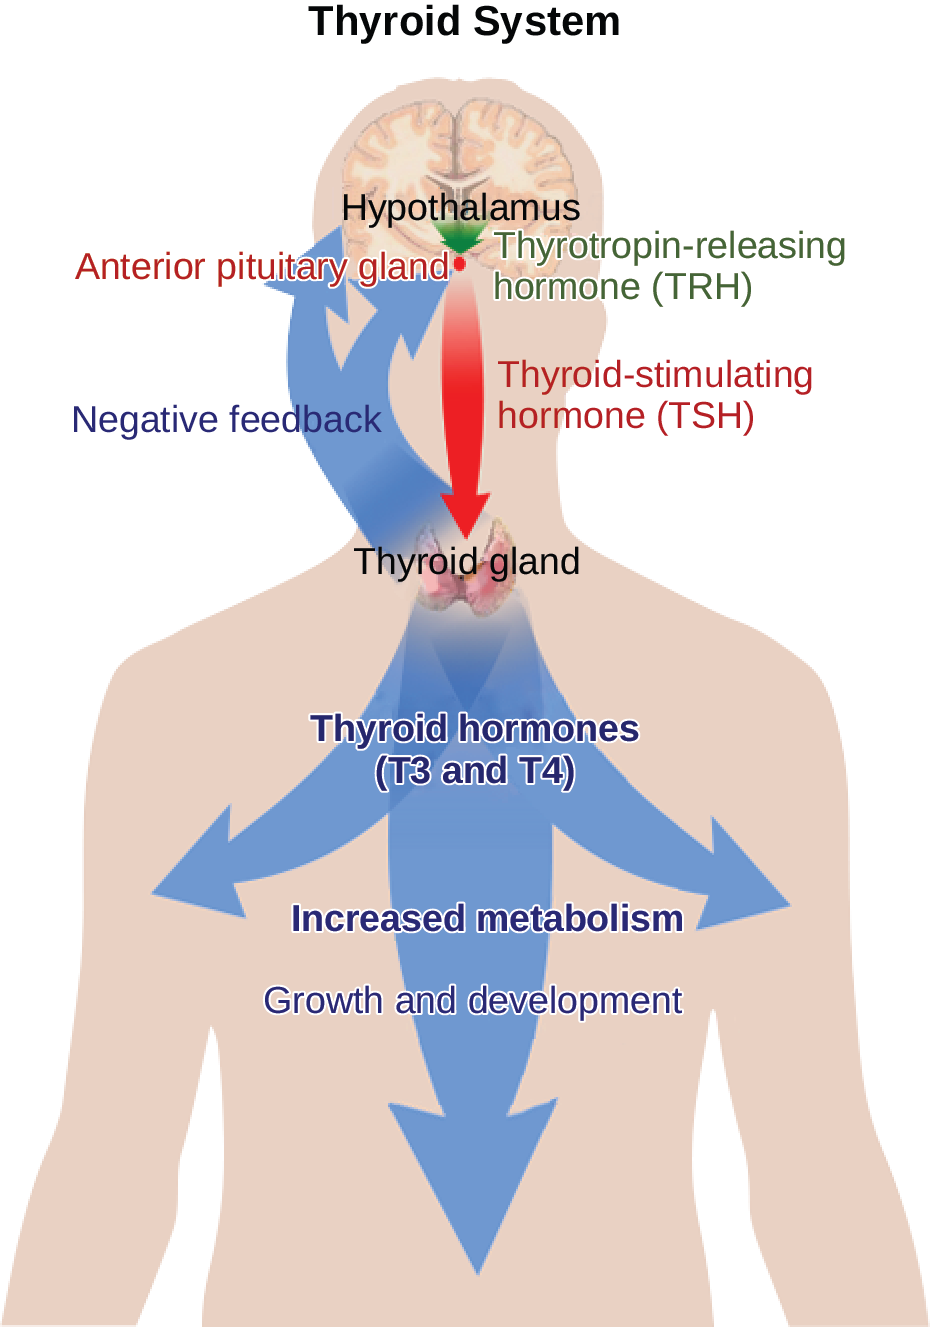 The hypothalamus secretes thyrotropin-releasing hormone, which causes the anterior pituitary gland to secrete thyroid-stimulating hormone, or T S H. Thyroid-stimulating hormone causes the thyroid gland to secrete the thyroid hormones T 3 and T 4, which increase metabolism, resulting in growth and development. In a negative feedback loop, T 3 and T 4 inhibit hormone secretion by the hypothalamus and pituitary, terminating the signal.